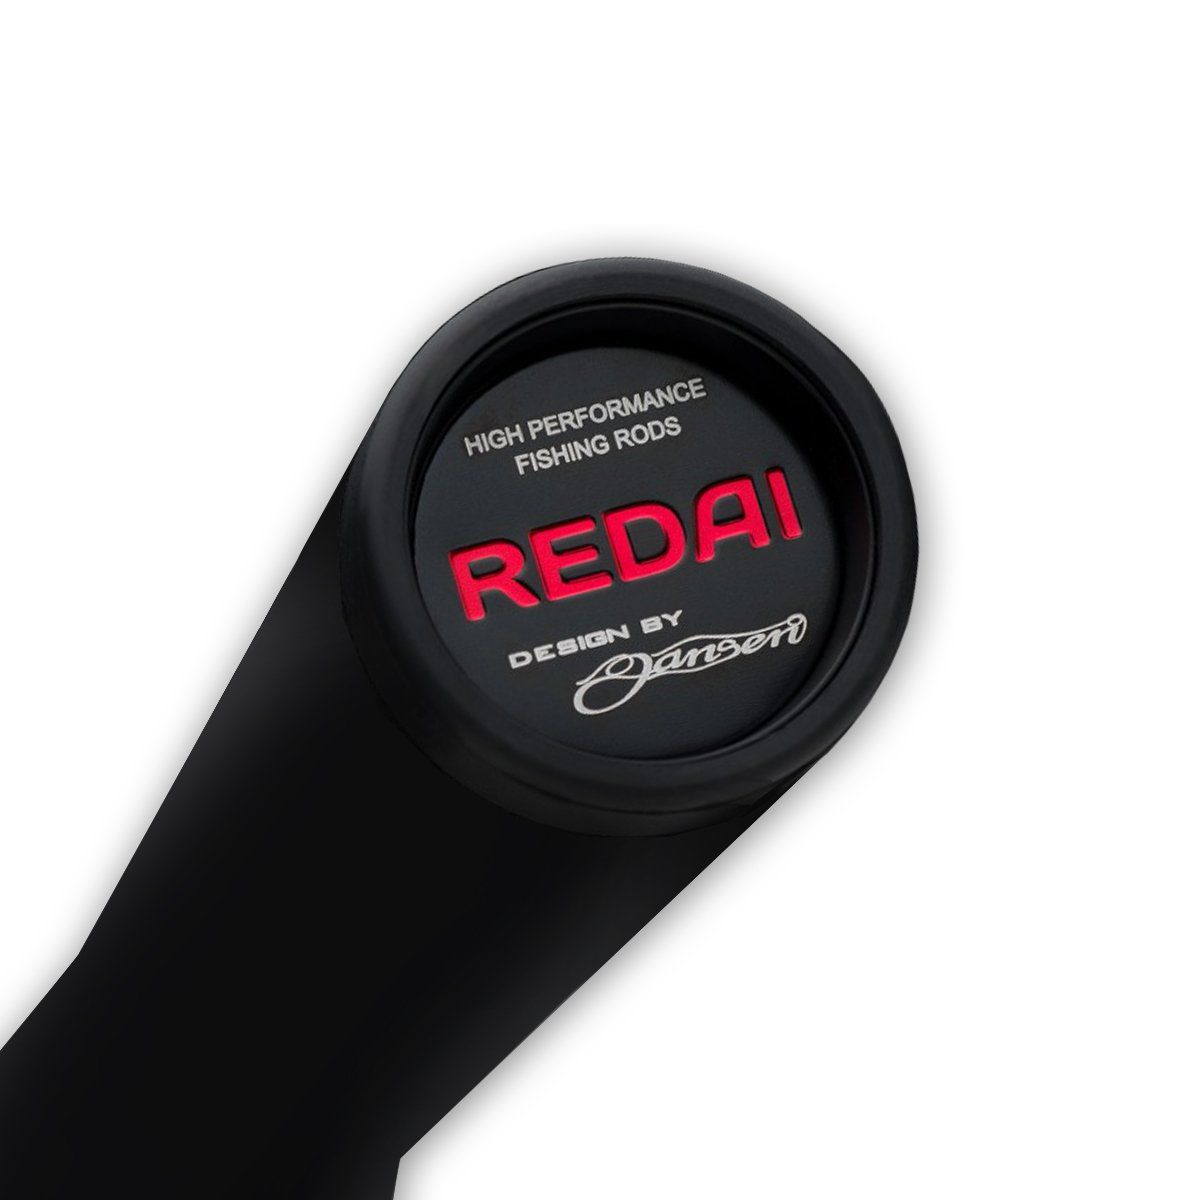 Vara Redai Black Mamba Second Gen. Carret 1,52m 5?8? 8-14LB